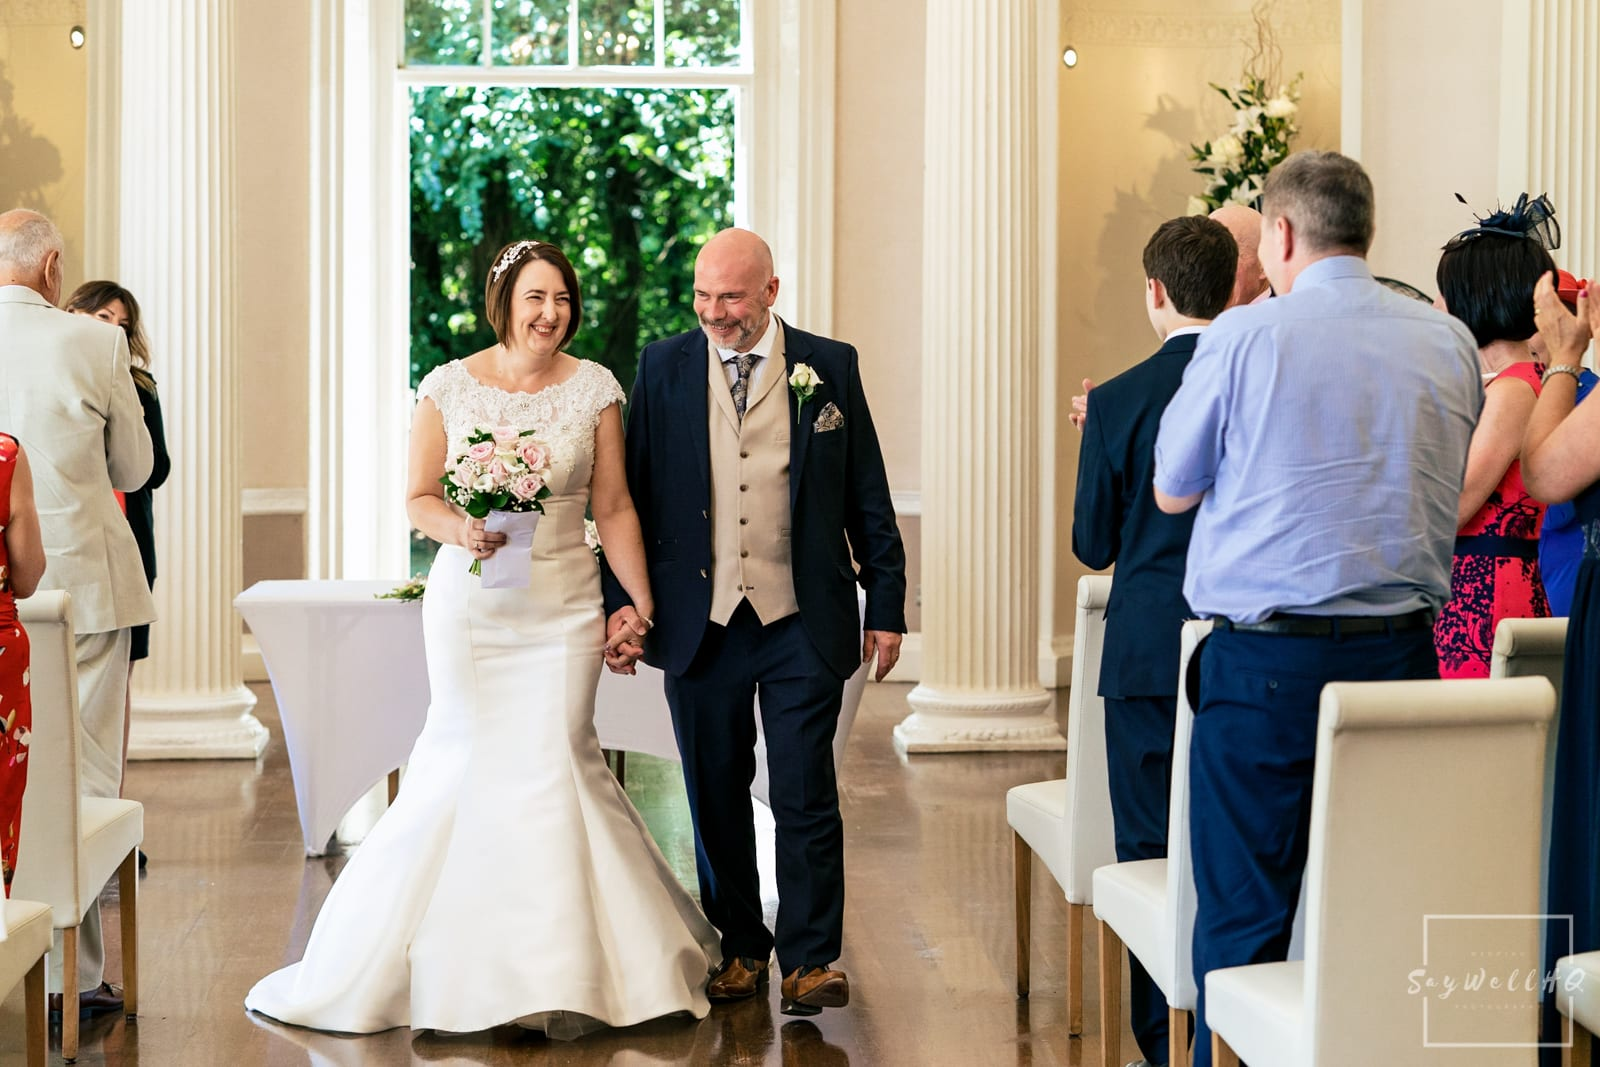 Colwick Hall Wedding Photography + Colwick Hall Wedding Photographer + bride and groom walking back down the aisle after their wedding ceremony at Colwick Hall Hotel